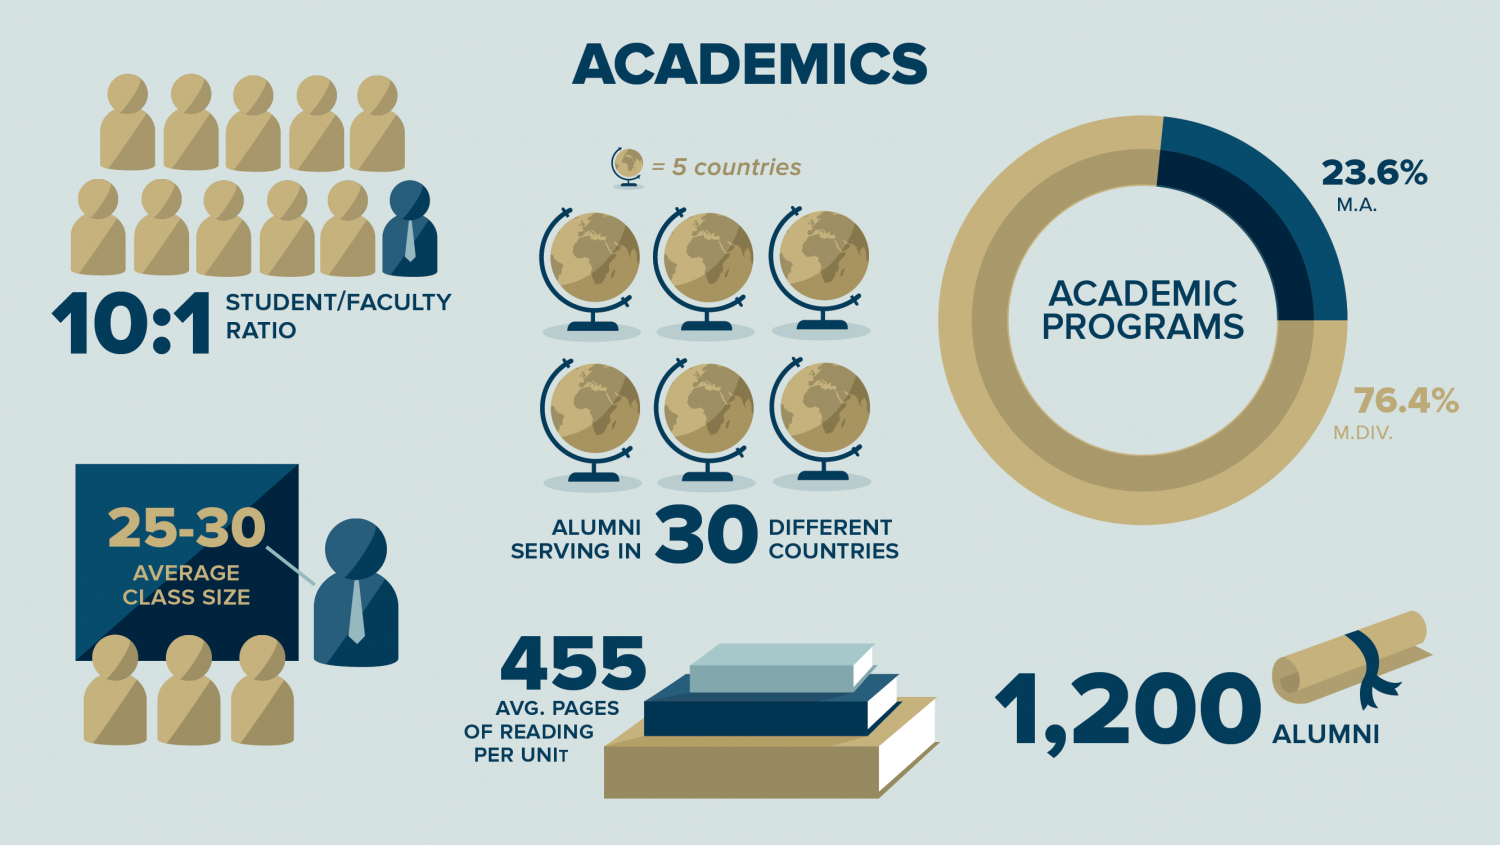 WSC At a Glance Academics Infographic